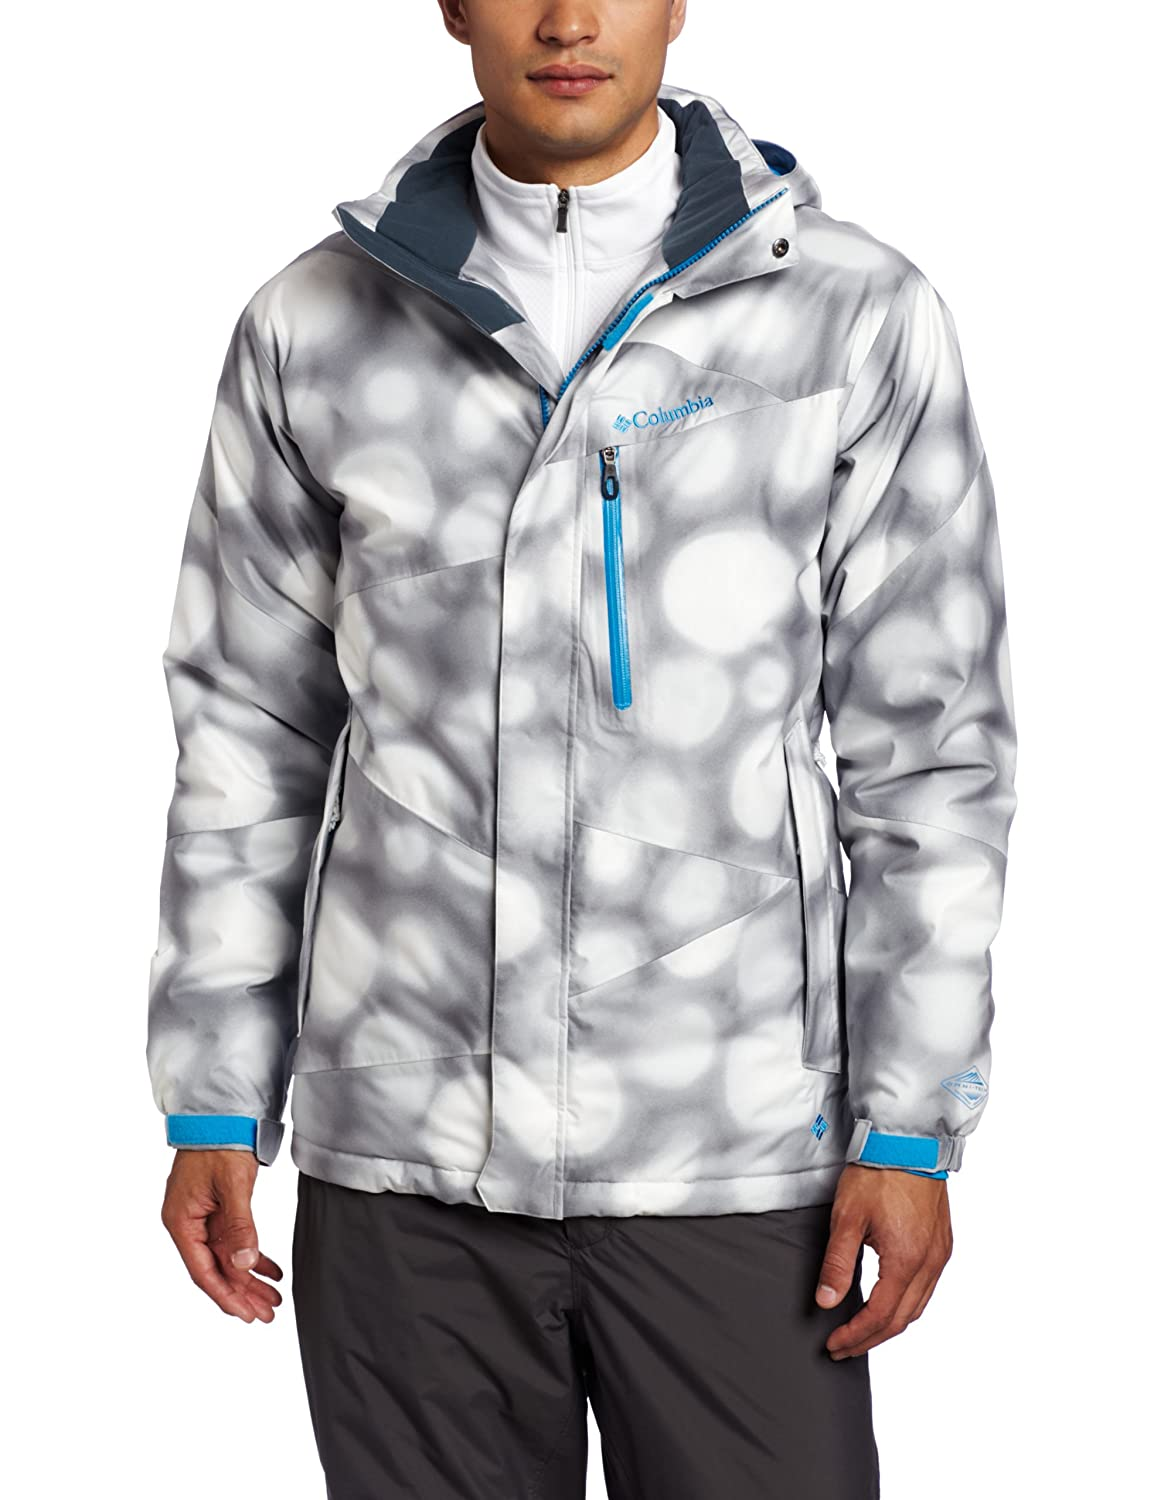 Columbia Men's Alpine Action Jungen Jacke Xl Weiß - Sea Salt Bubbles Print